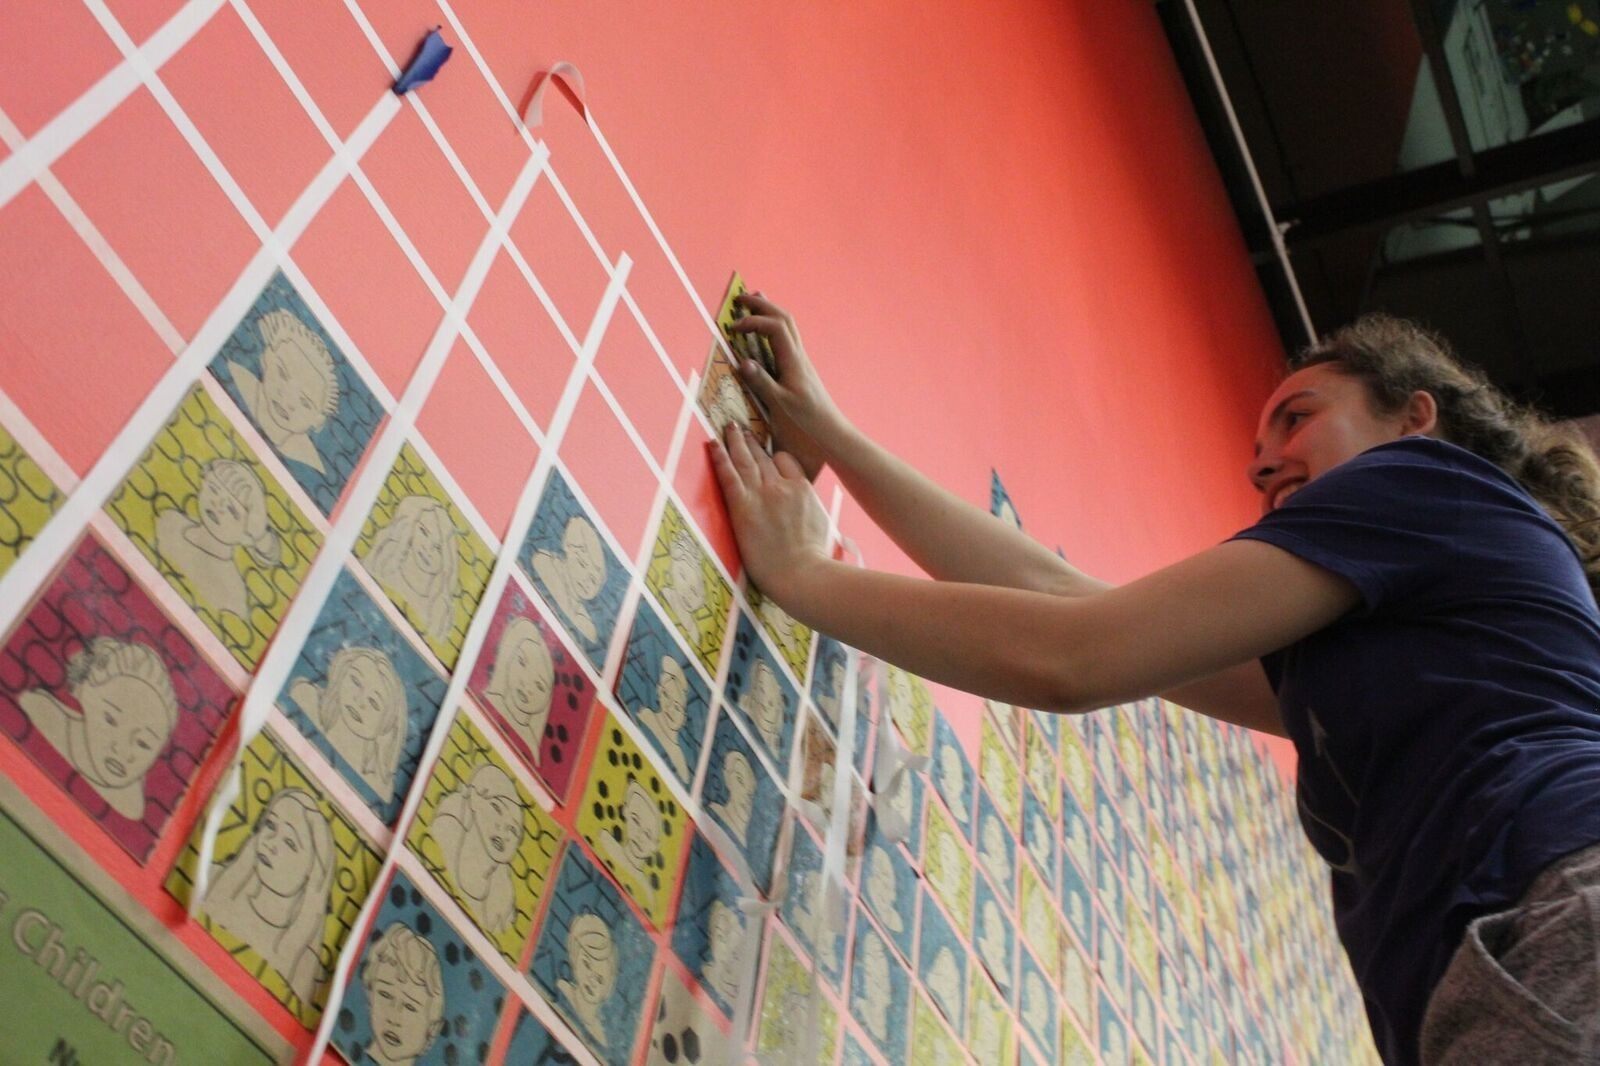 ART FOR A CAUSE: Kat Brissette works on her project that sheds light on child homelessness.